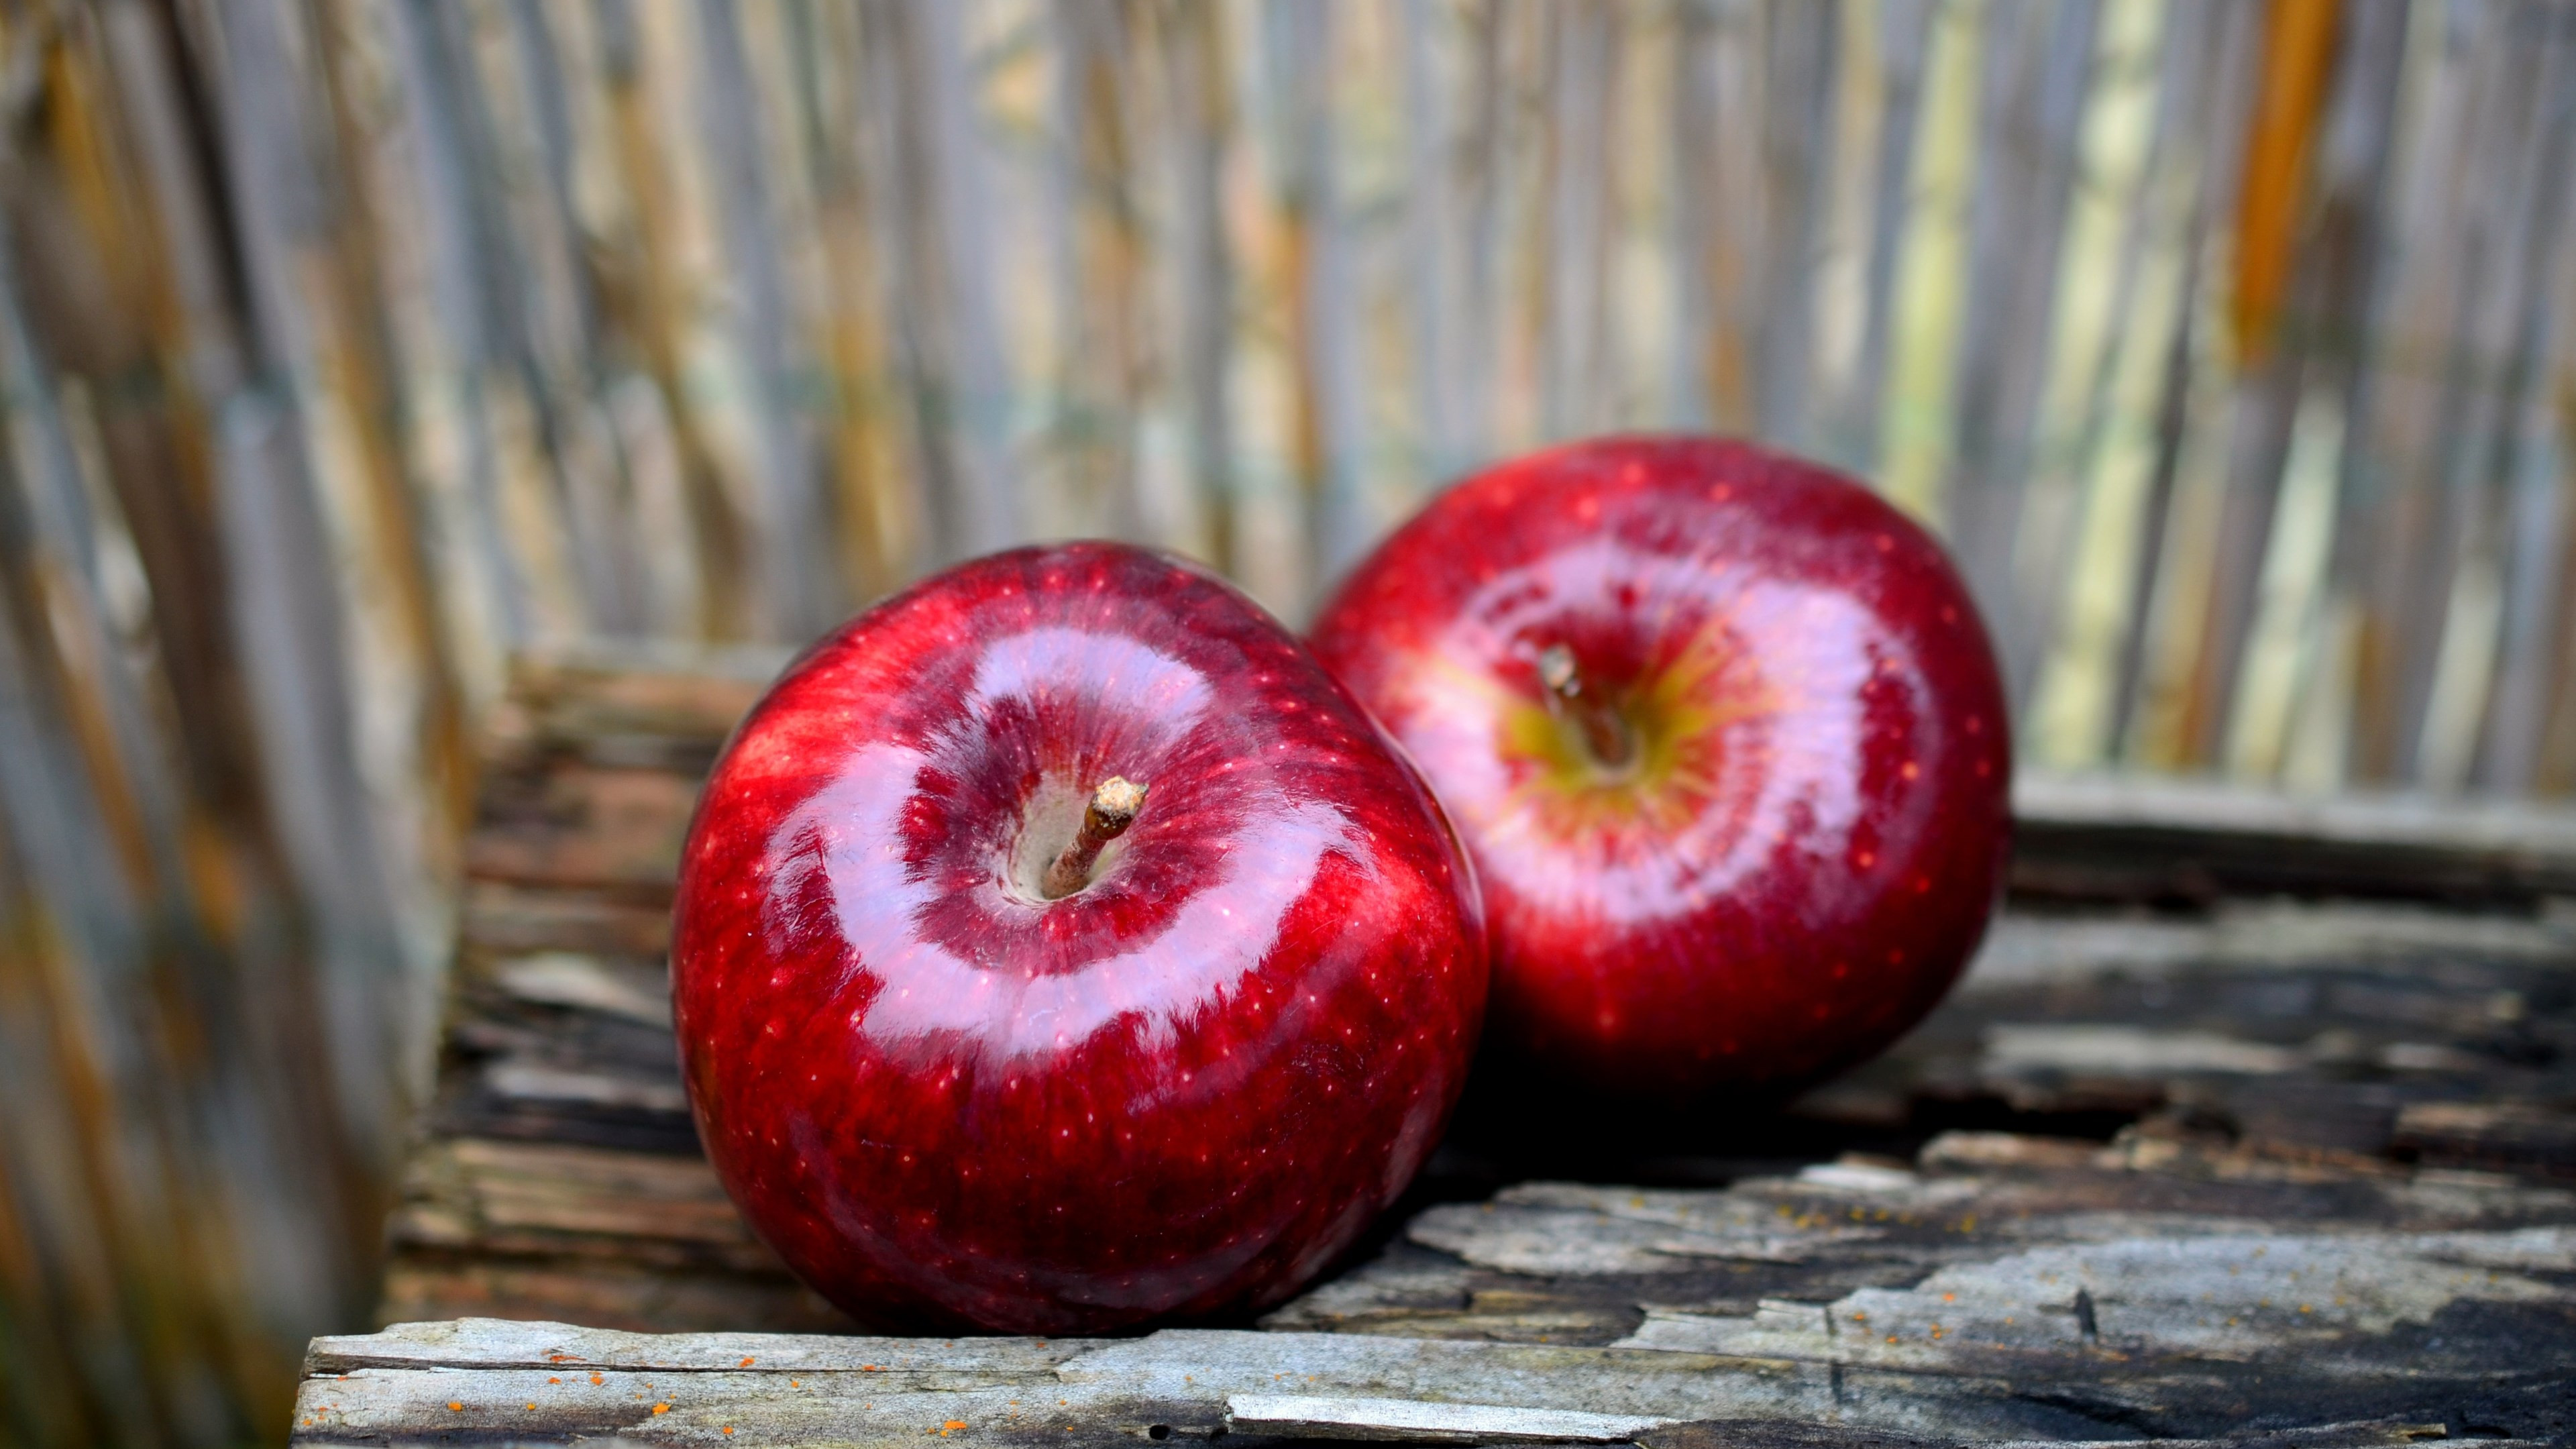 Delicious red apples wallpaper 3840x2160